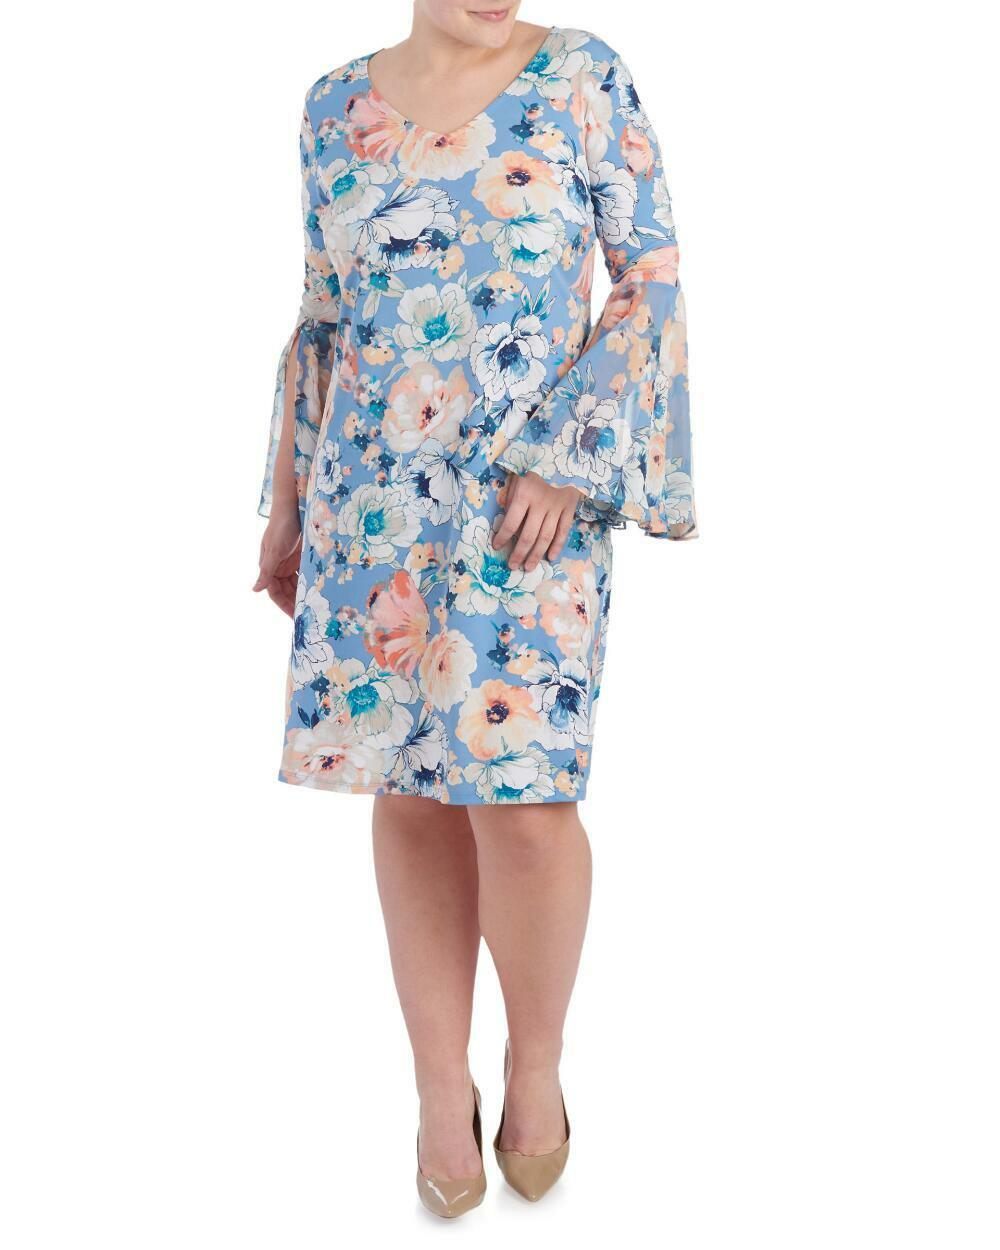 MSK  - Womens 1X - NWT  88 - Pastel Garden Floral Bell Sleeve Stretch Knit Dress